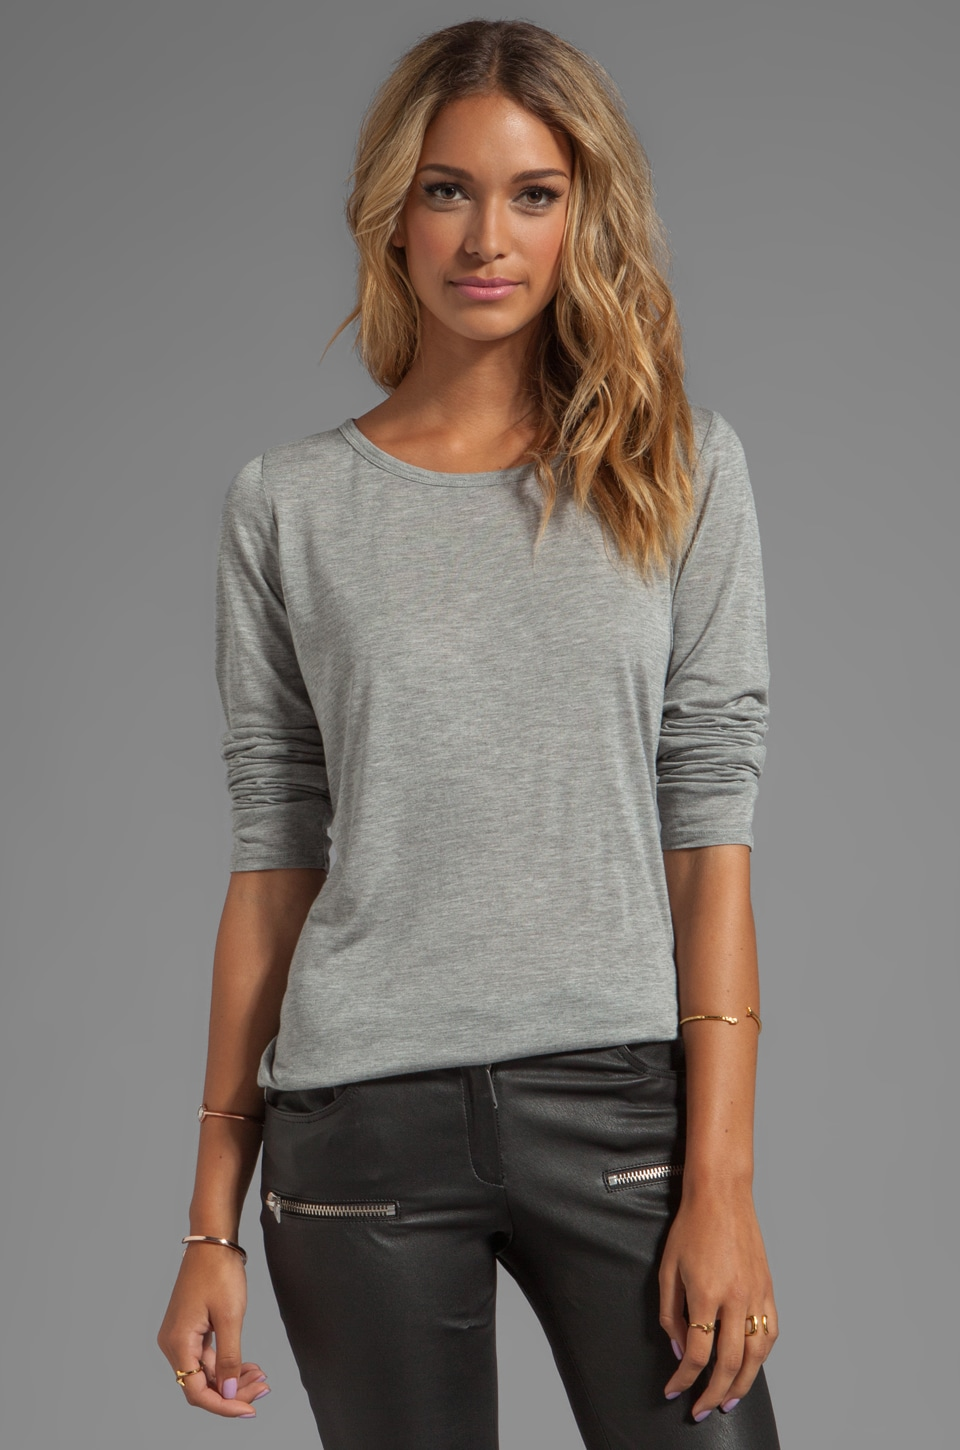 Heather Core Long Sleeve Tee in Light Heather Grey